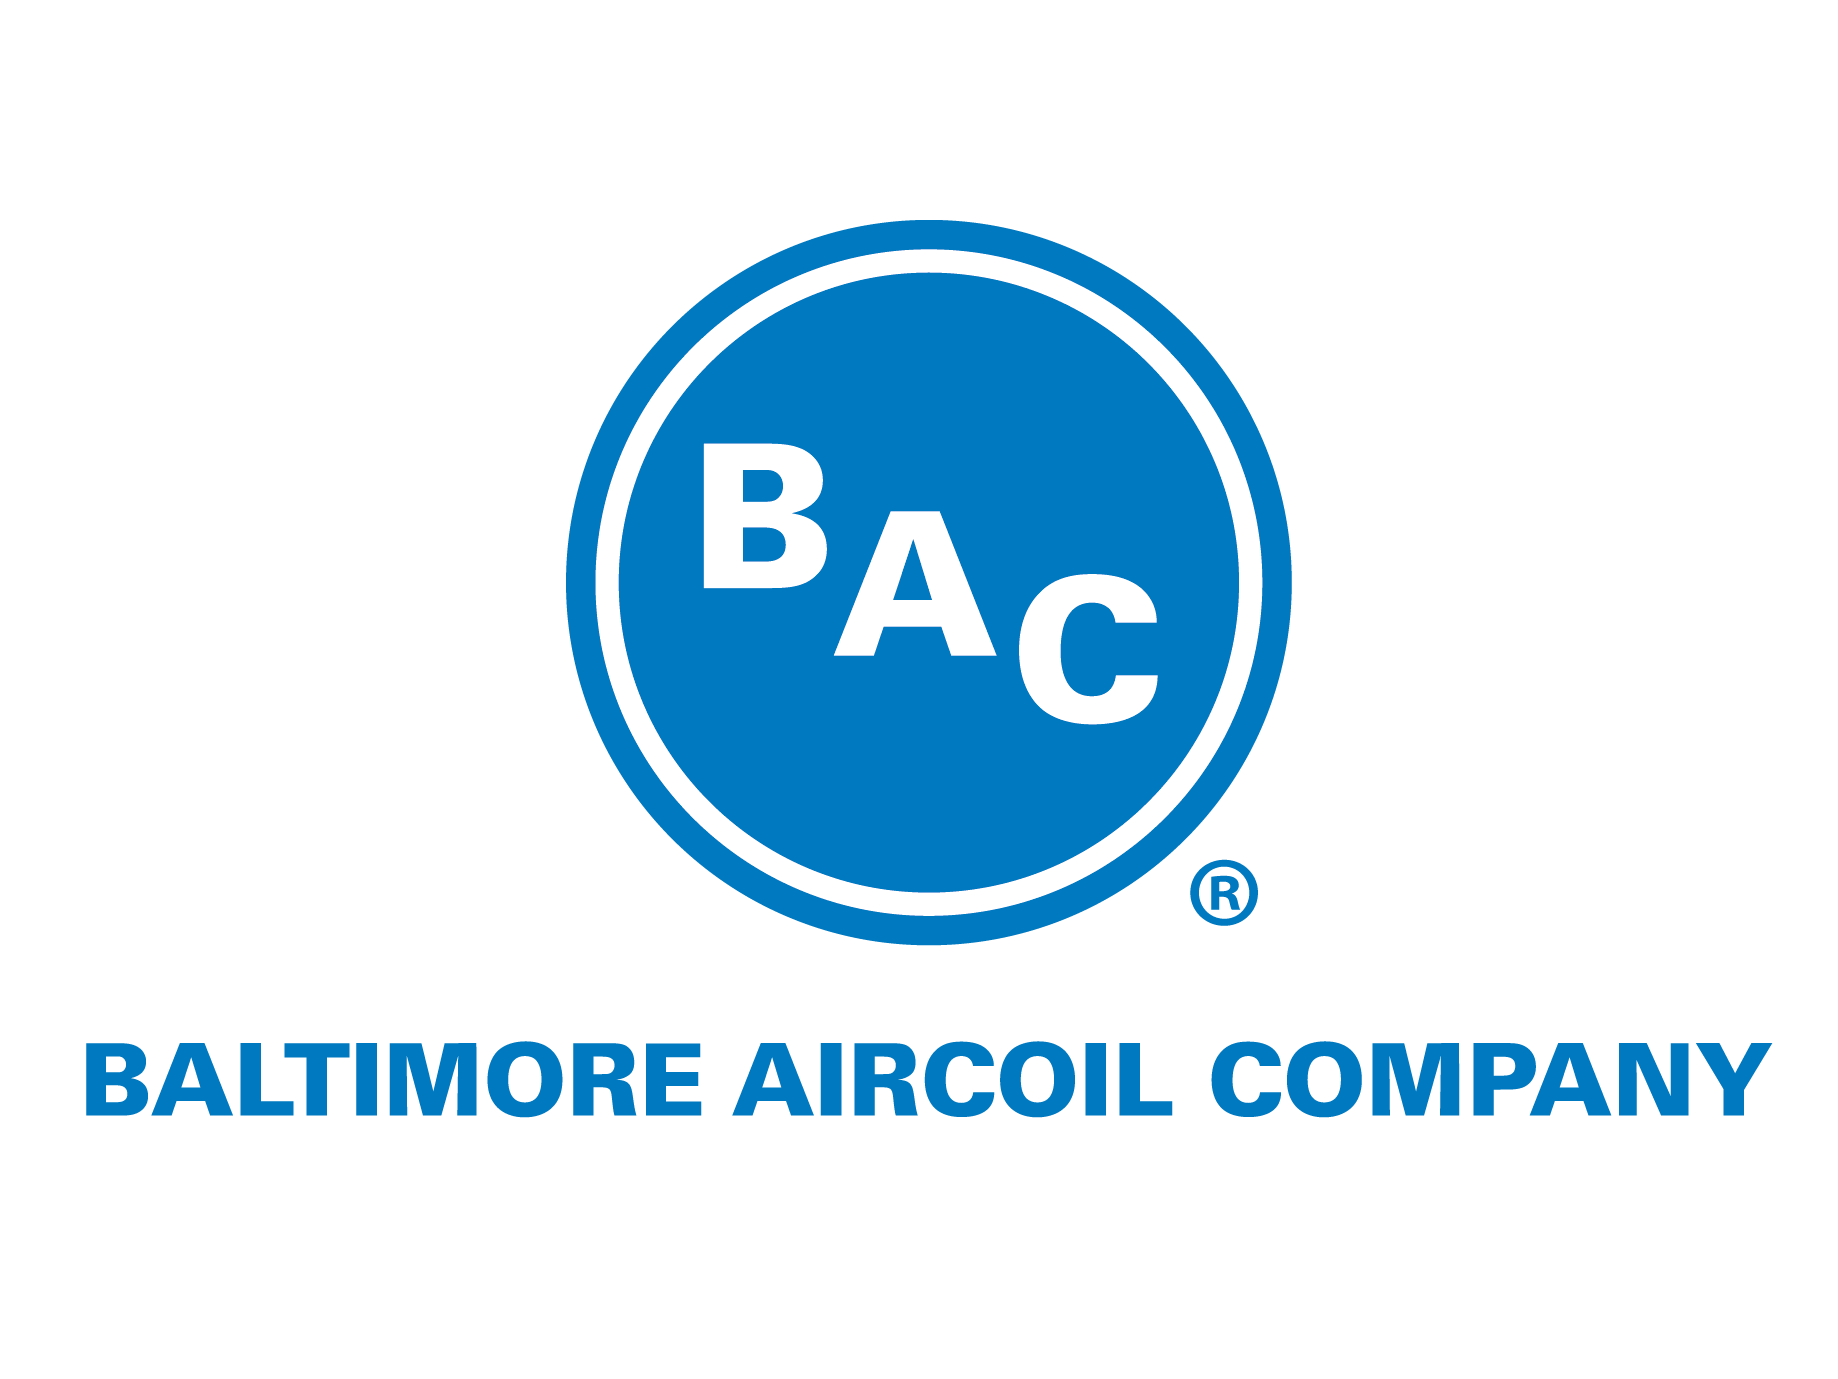 Baltimore Air Coil_TextUnder_CMYK.png